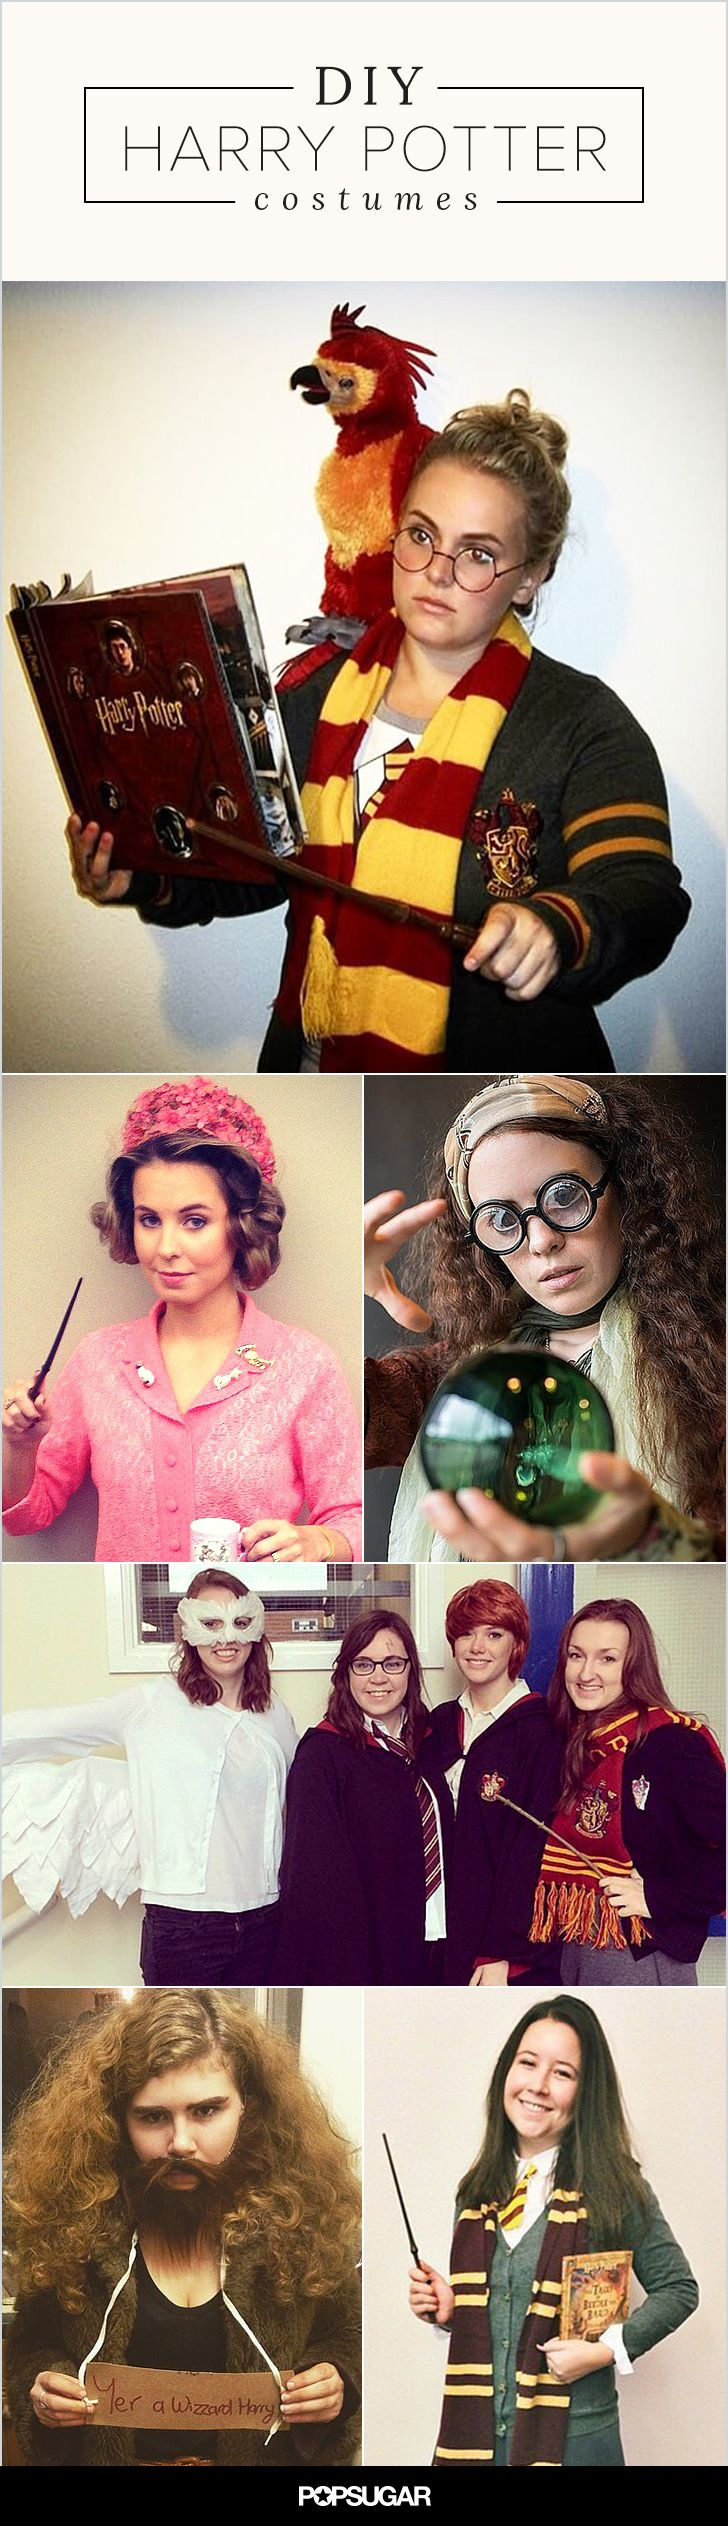 We've rounded up the most amazing Harry Potter costumes you can DIY — from ones that are more obvious, to the ones that only true Potterheads will appreciate.